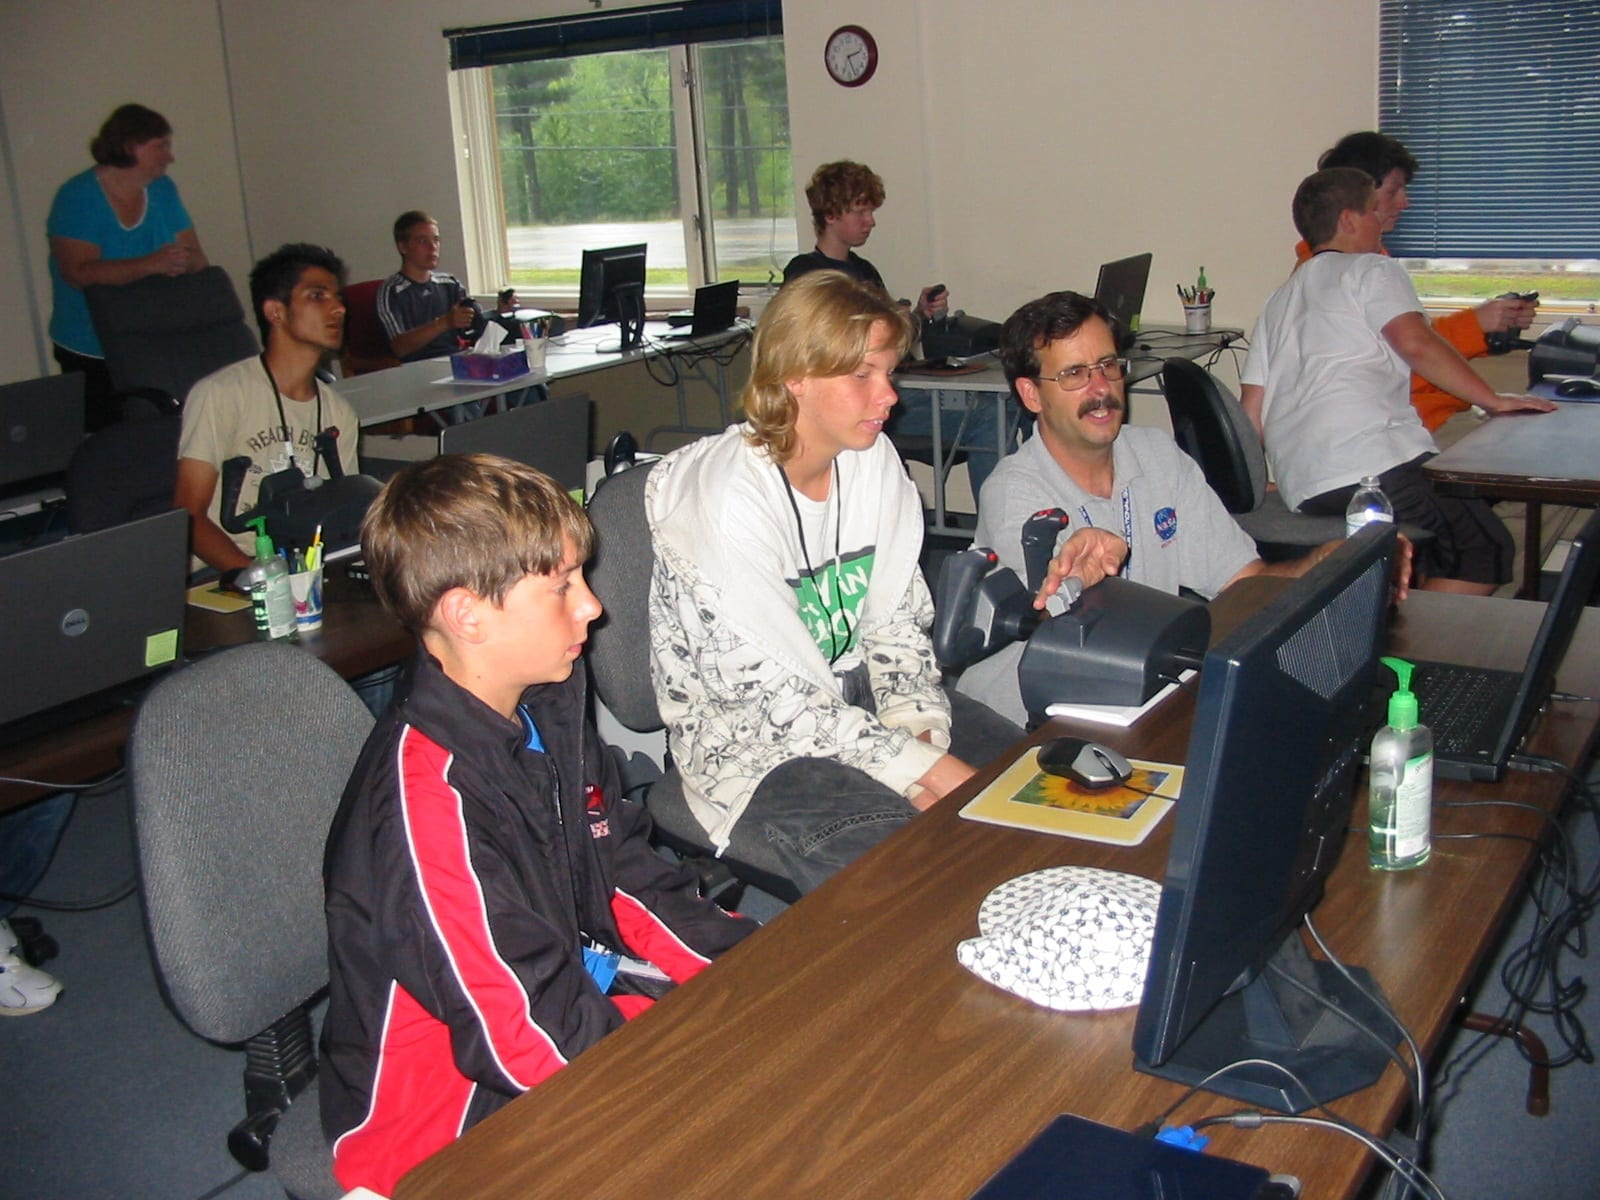 Students attending Winnaero's ACE Academy located at Laconia Airport in Gilford, N.H., learn the fundamentals of aviation from Project Director Dan Caron.  Photo courtesy Winnaero